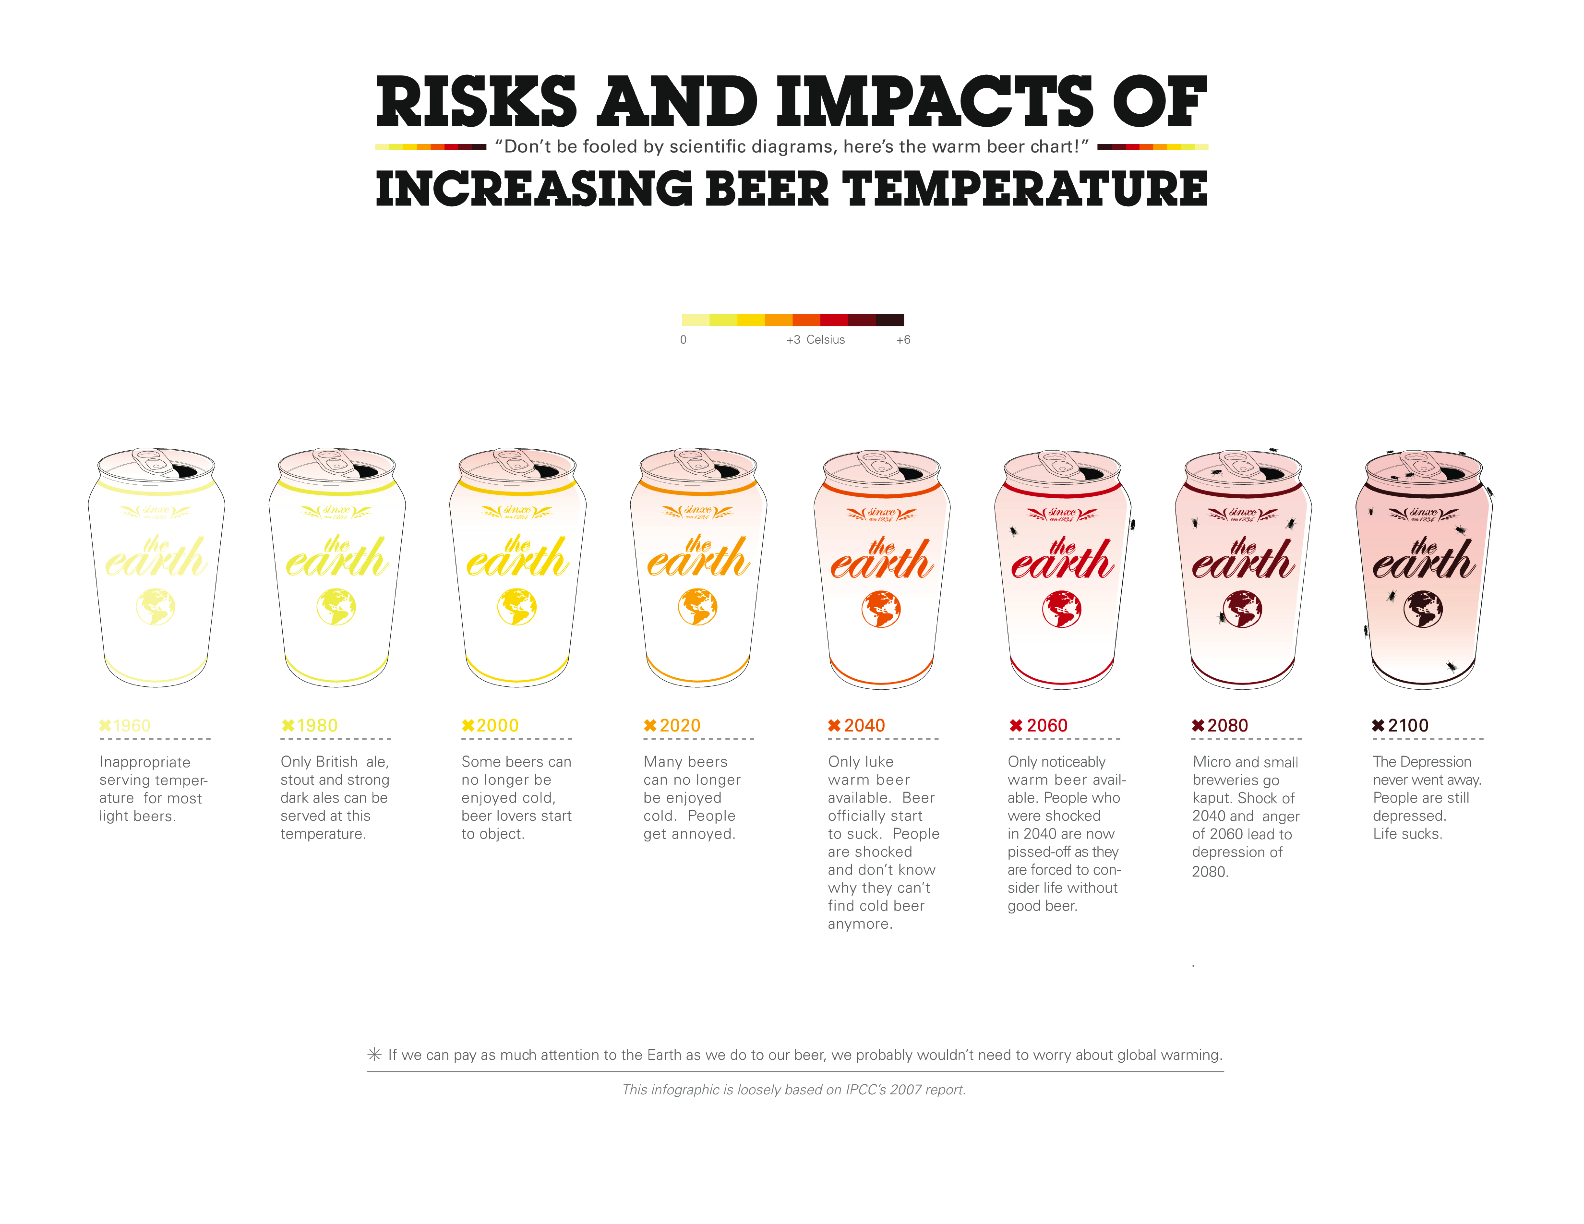 The global warming impact on beer